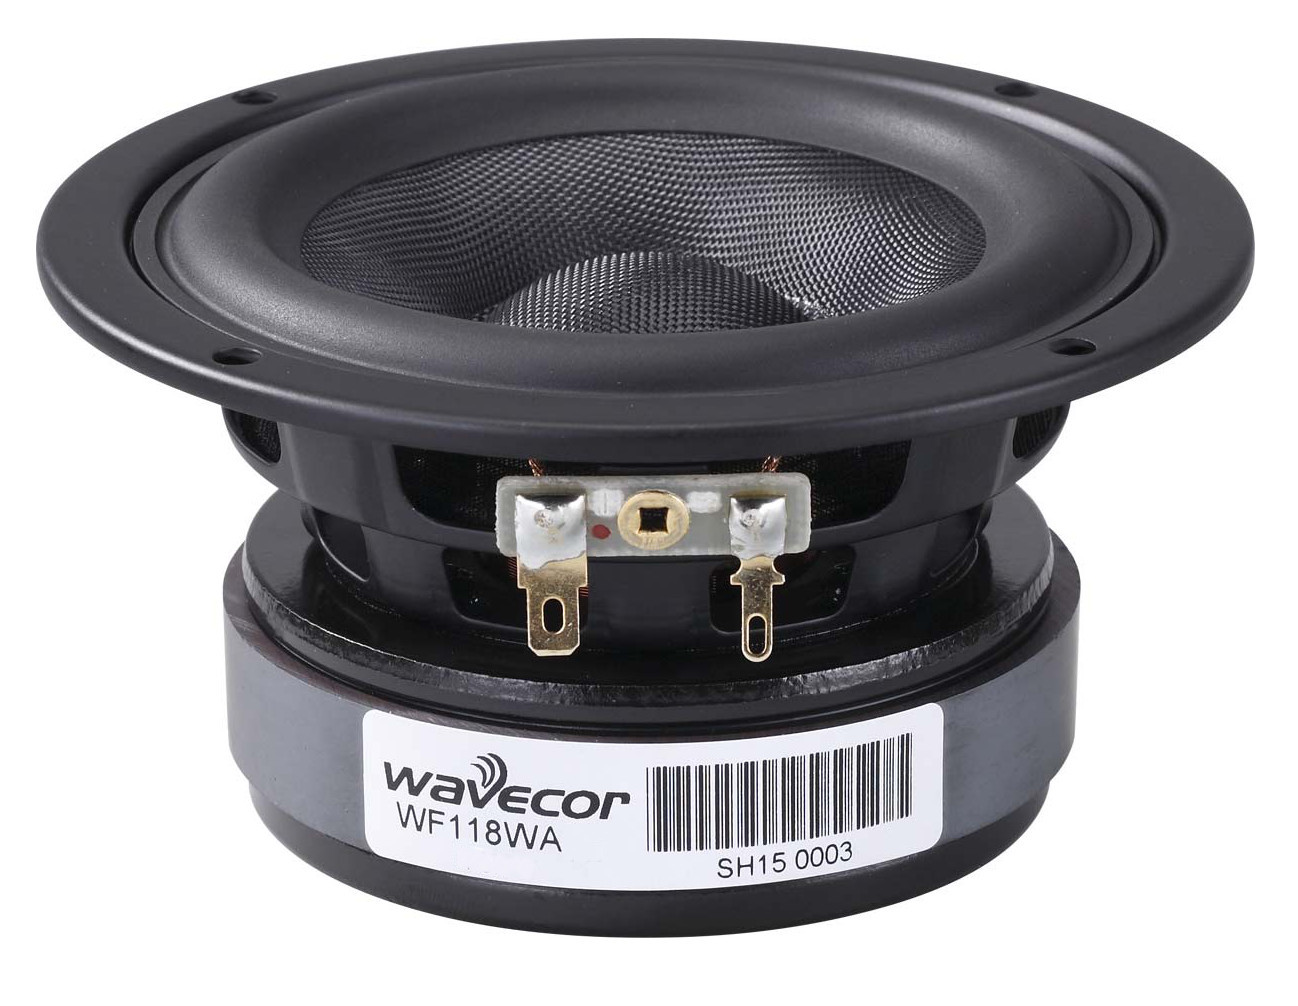 Wavecor WF118WA05, Glasfaser Membran 4 OHM